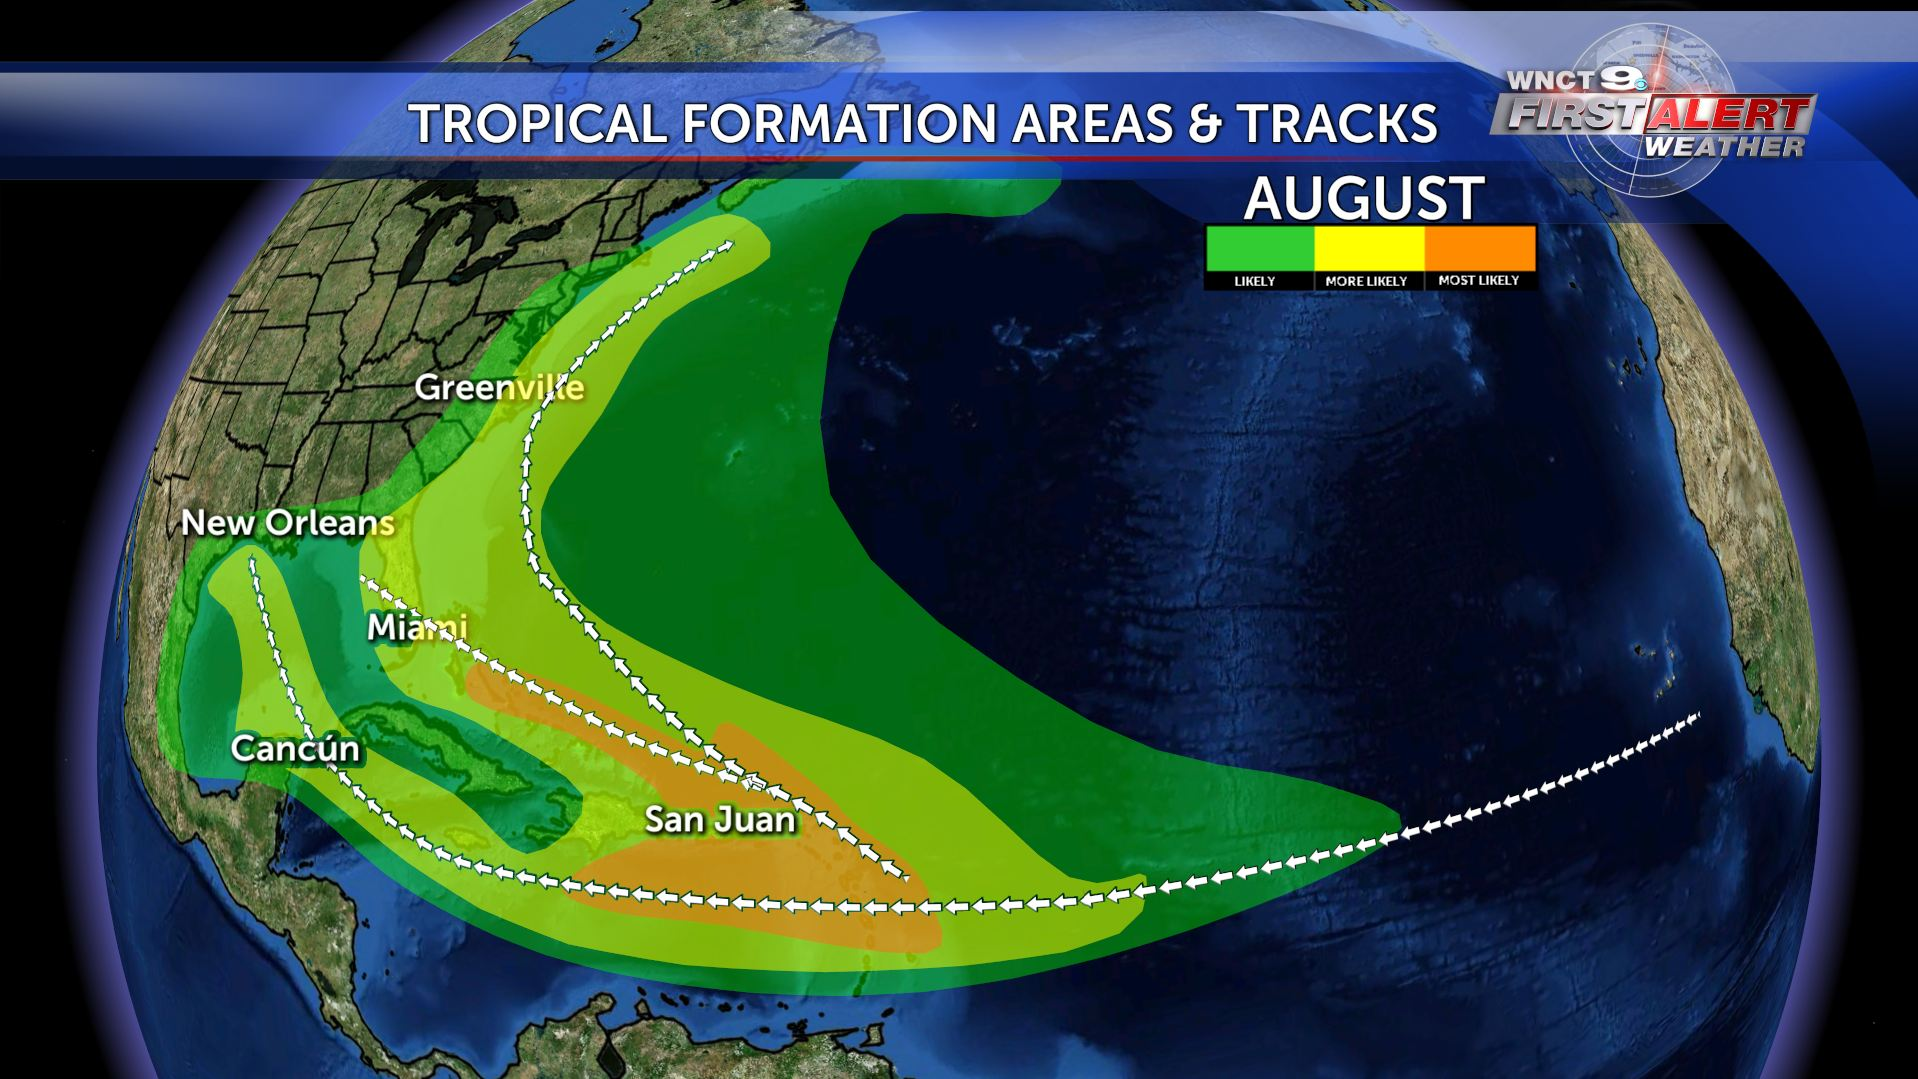 Quiet Hurricane Season August Tropical Formation Areas